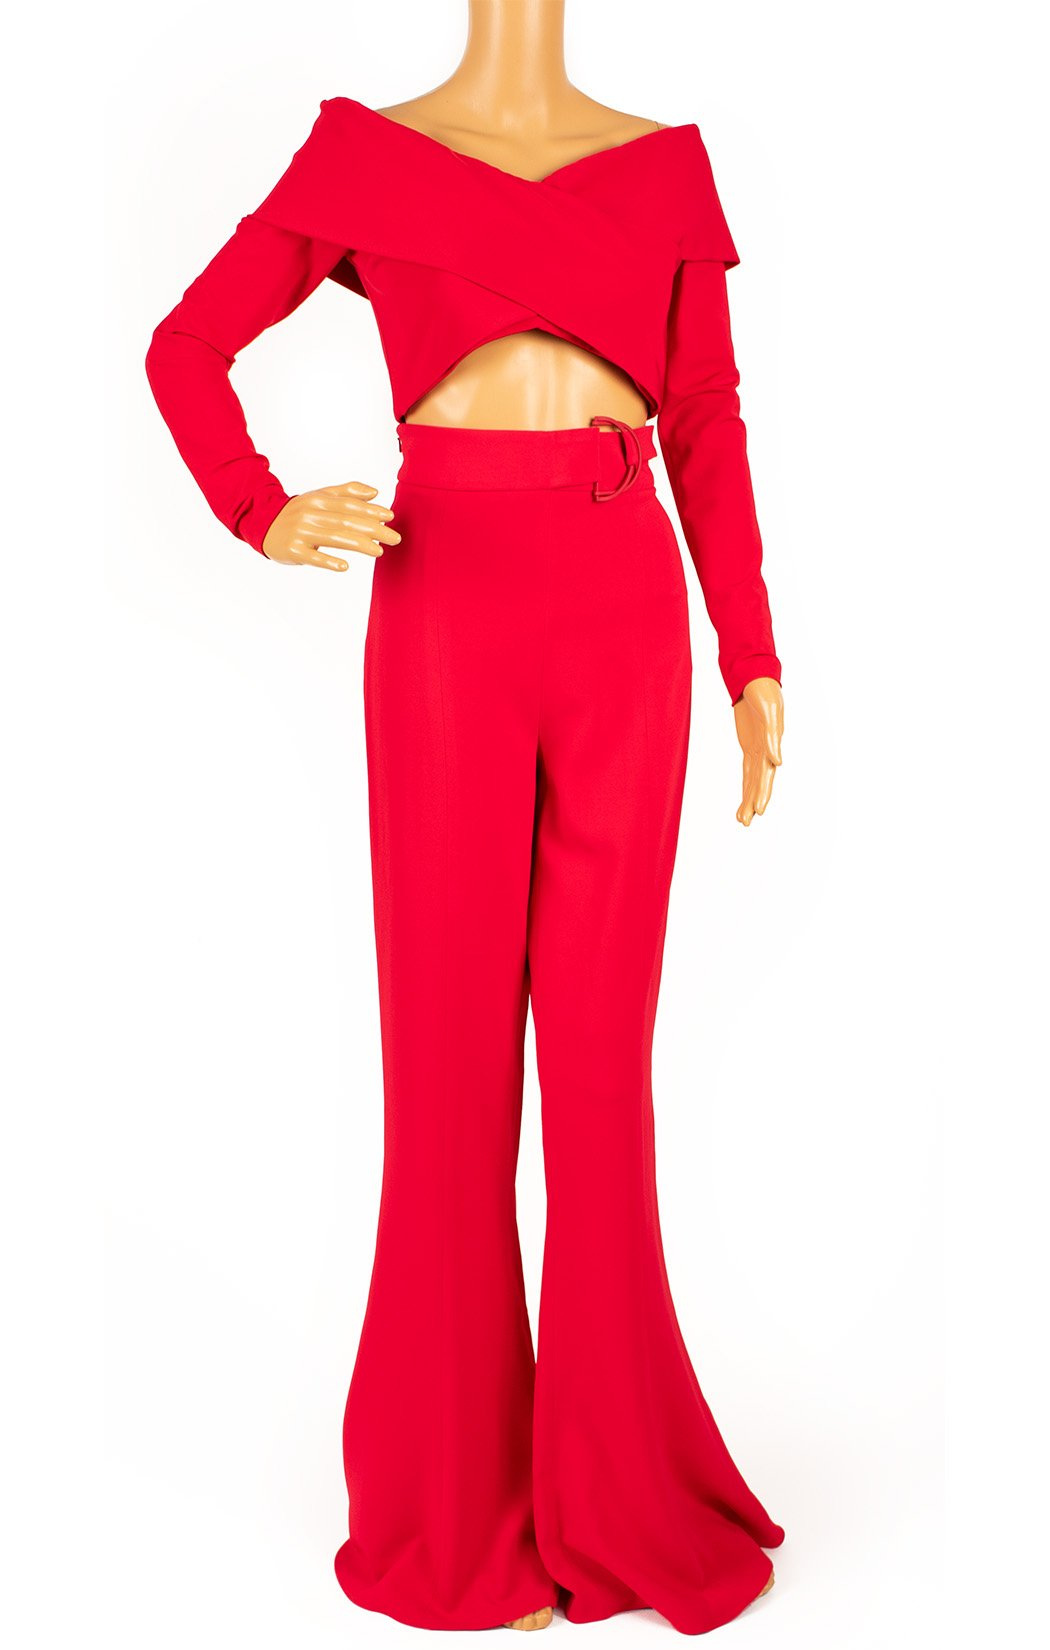 Front view of CUSHNIE ET OCHS Pant suit Size: Top is size 6, pant is size 8